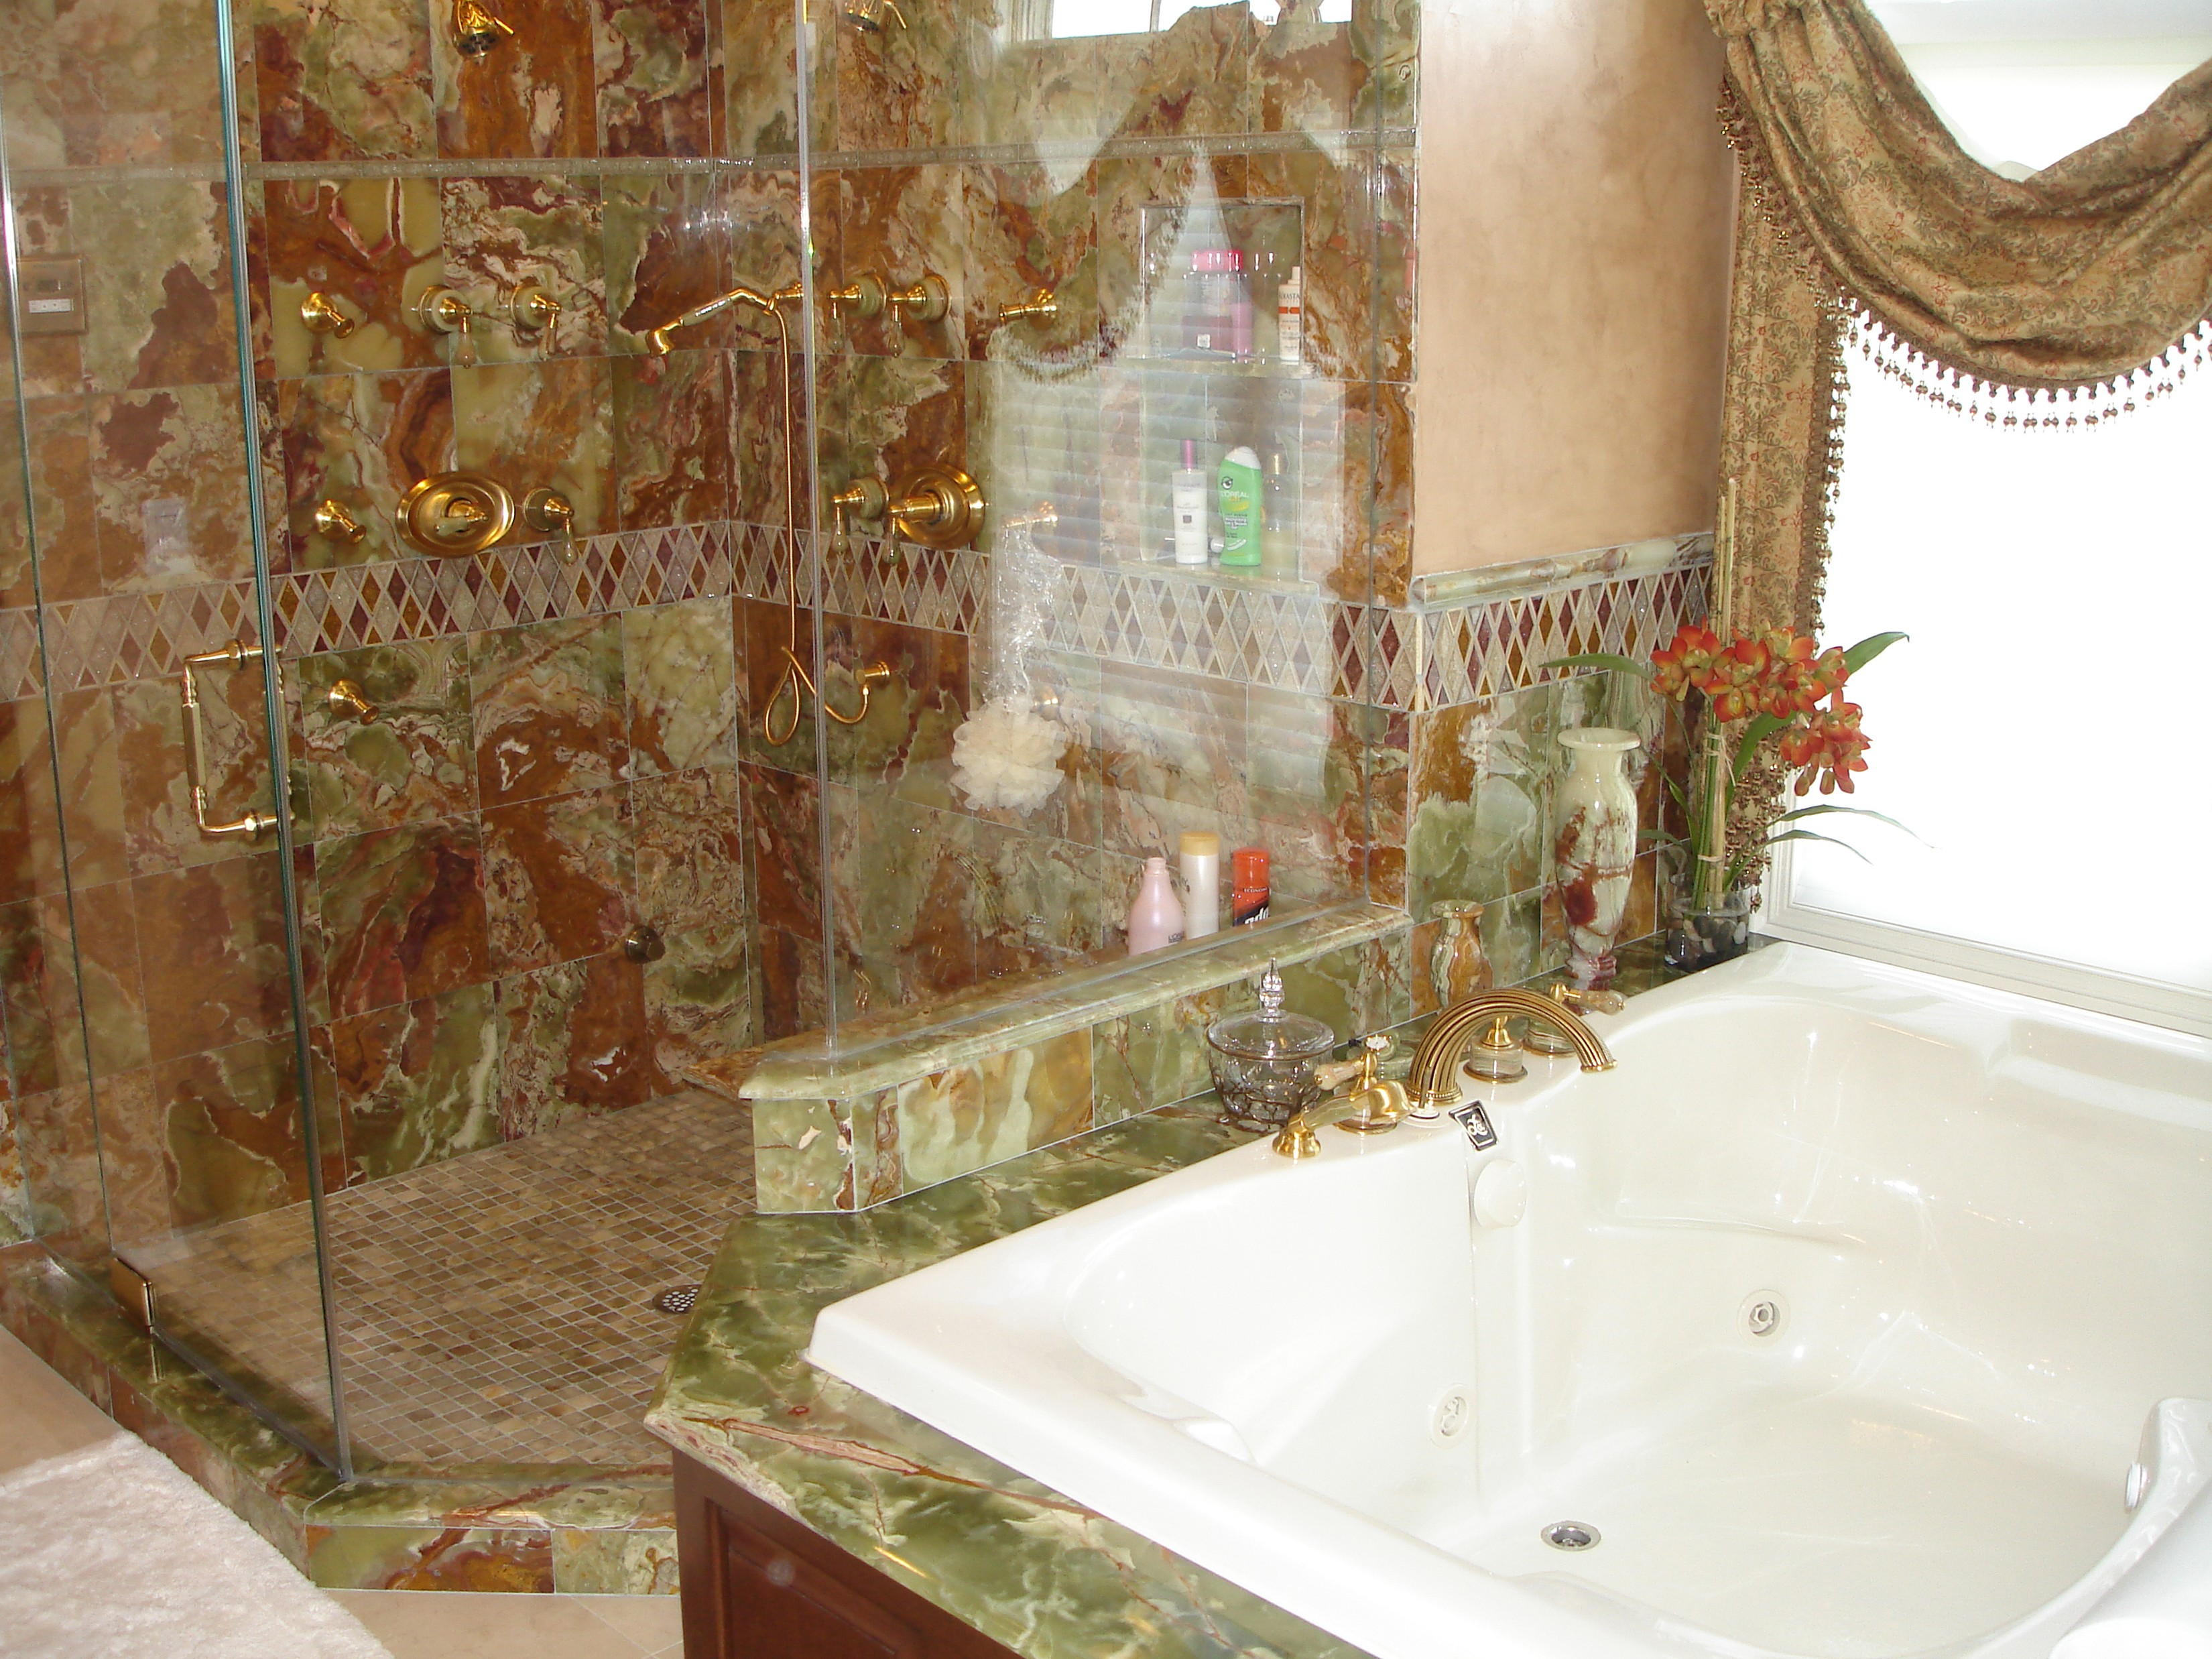 Finance Options For Remodeling Design Build Planners - Bathroom remodel contractors in orange county ca